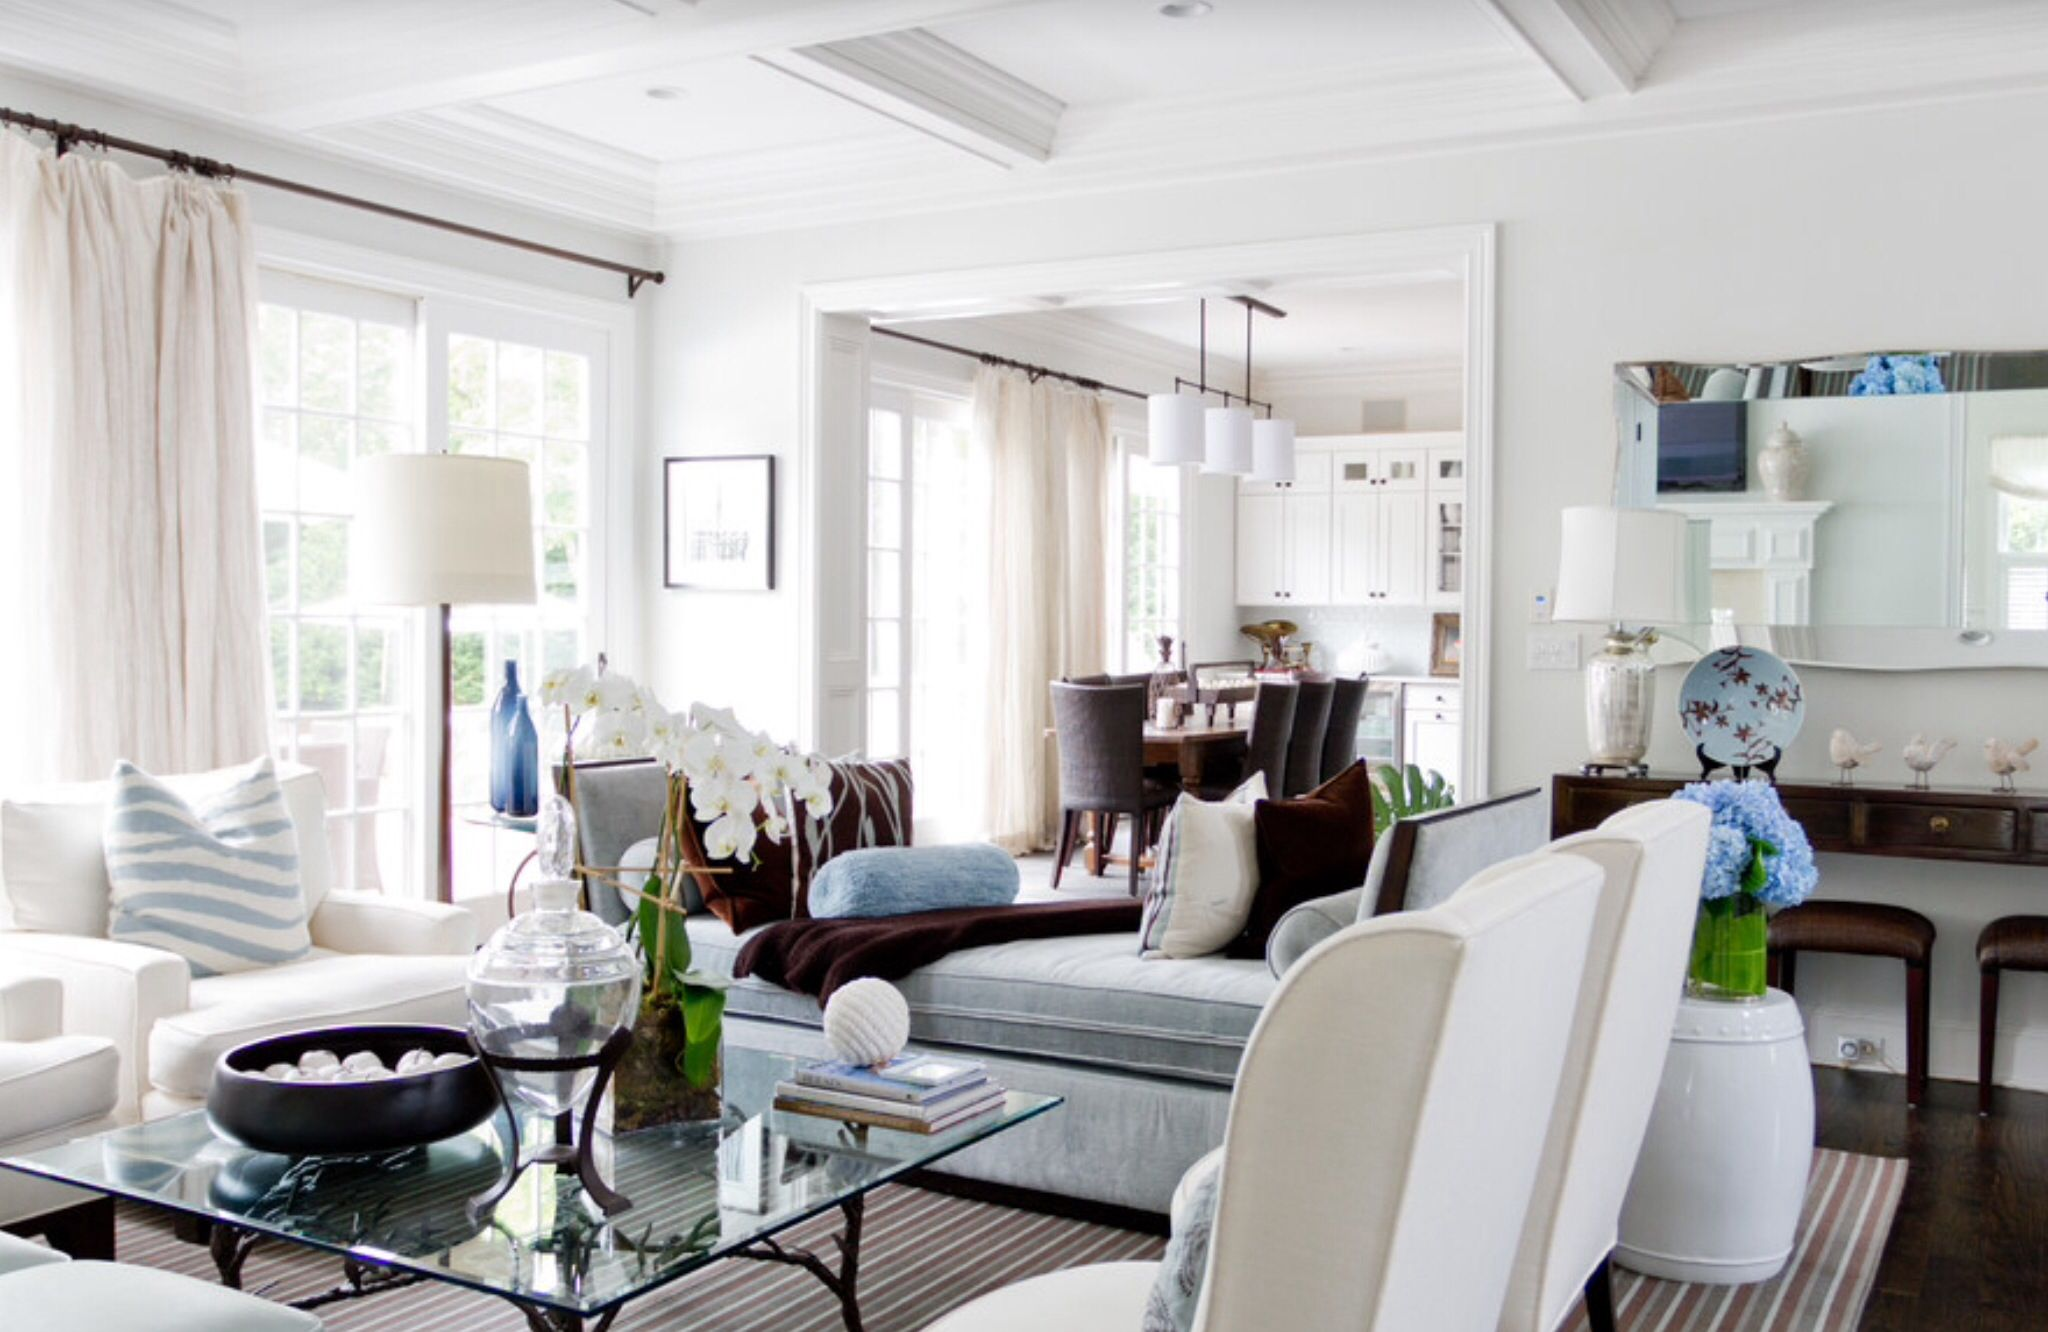 Living Room Design Houzz Glamorous By Houzz  Salones  Pinterest  Houzz Design Ideas